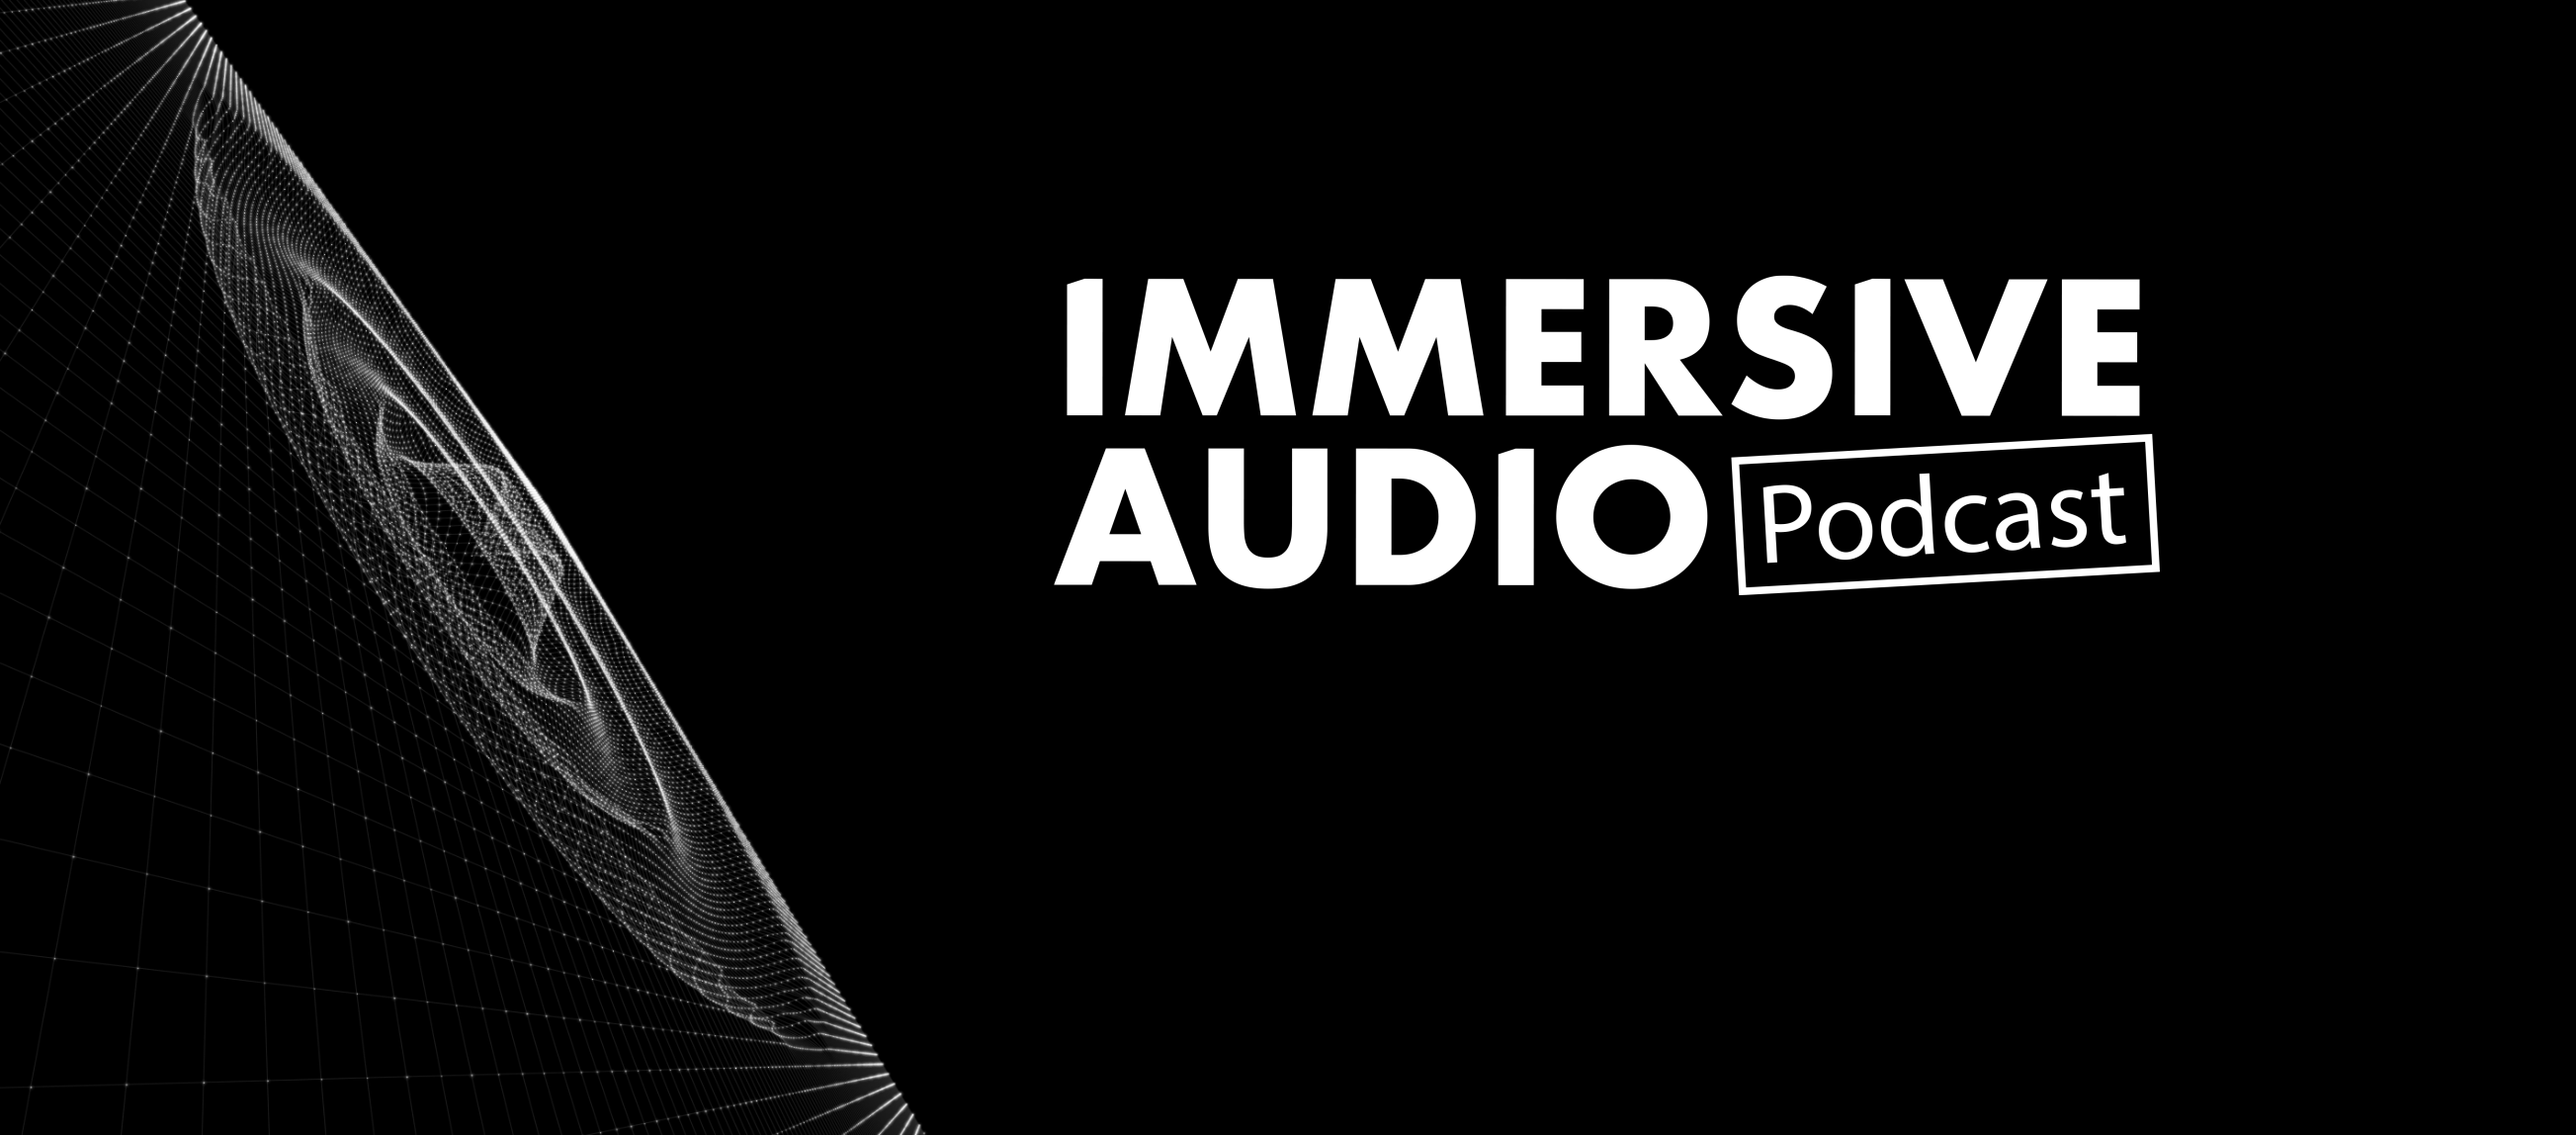 Immersive Audio Podcast Episode 31 – Amelia Kallman